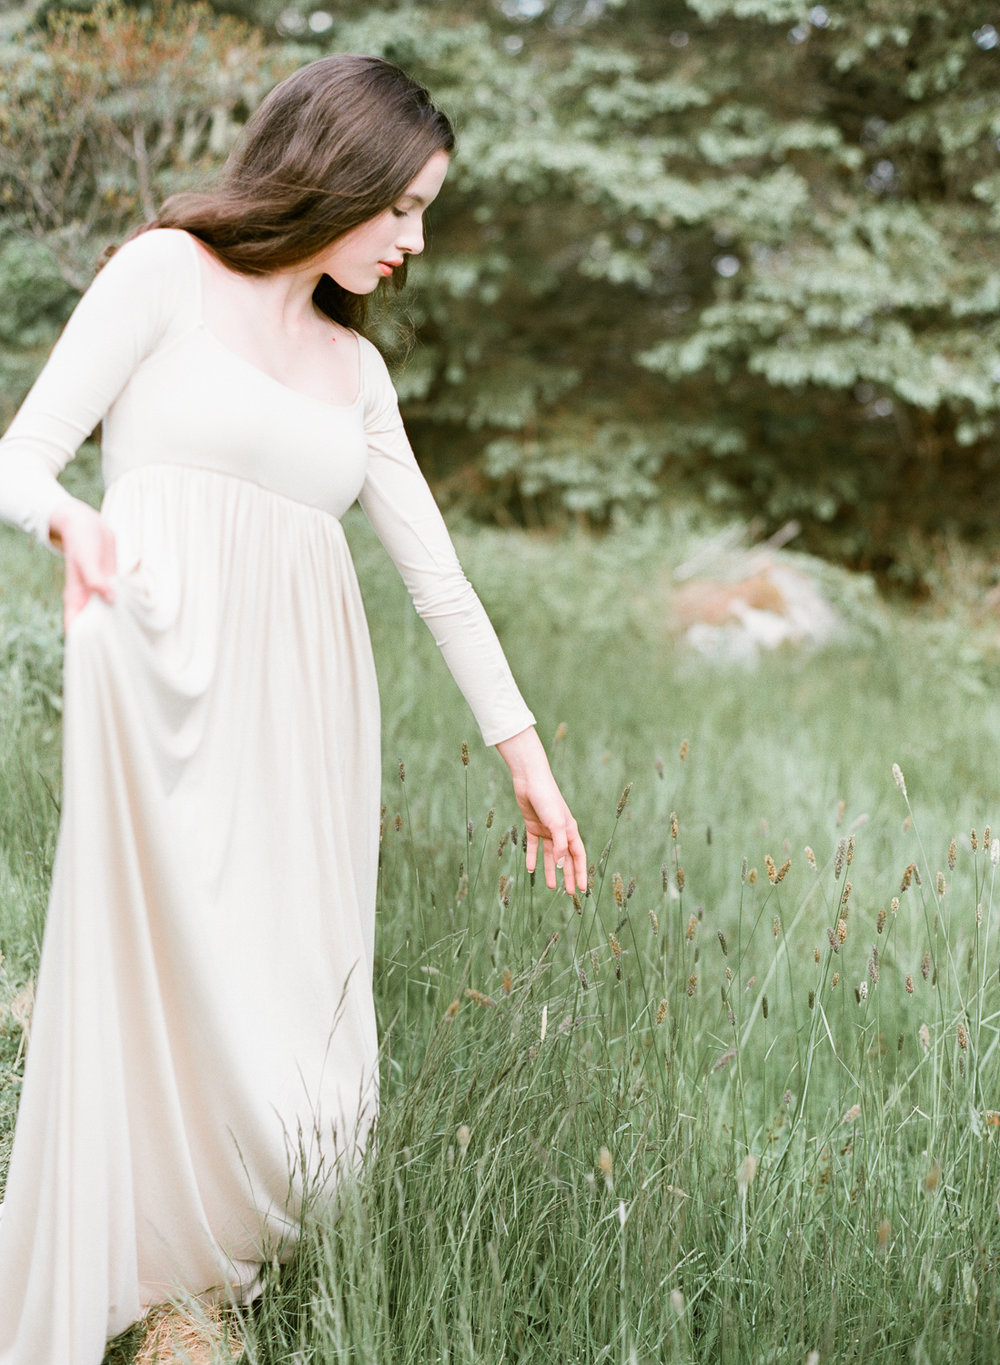 Jacqueline Anne Photography Captured on Film, A Woman in a Cream Dress, walking through long grass